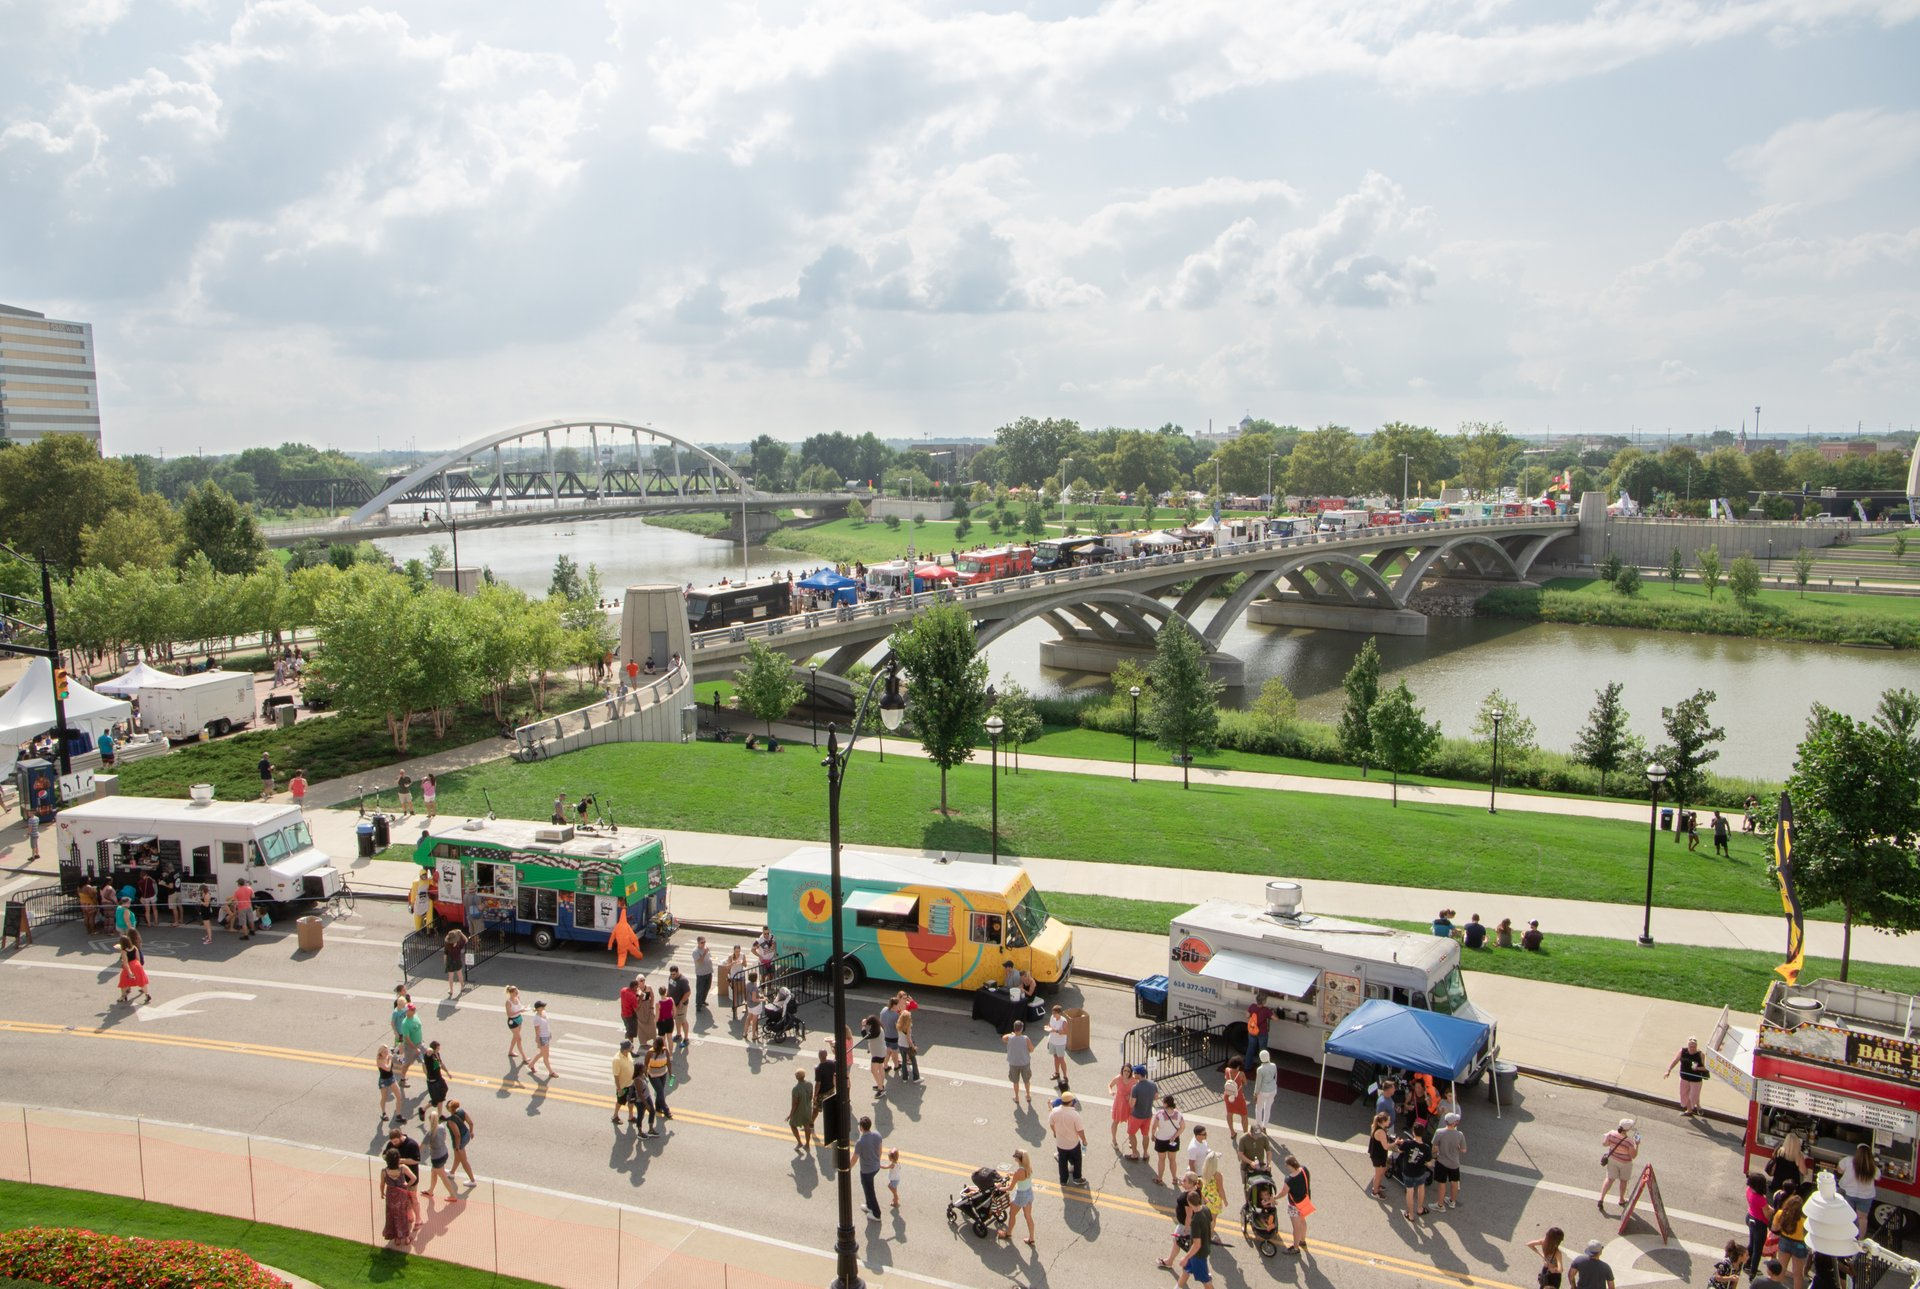 Columbus Food Truck Festival in Ohio 2020 - Best Time